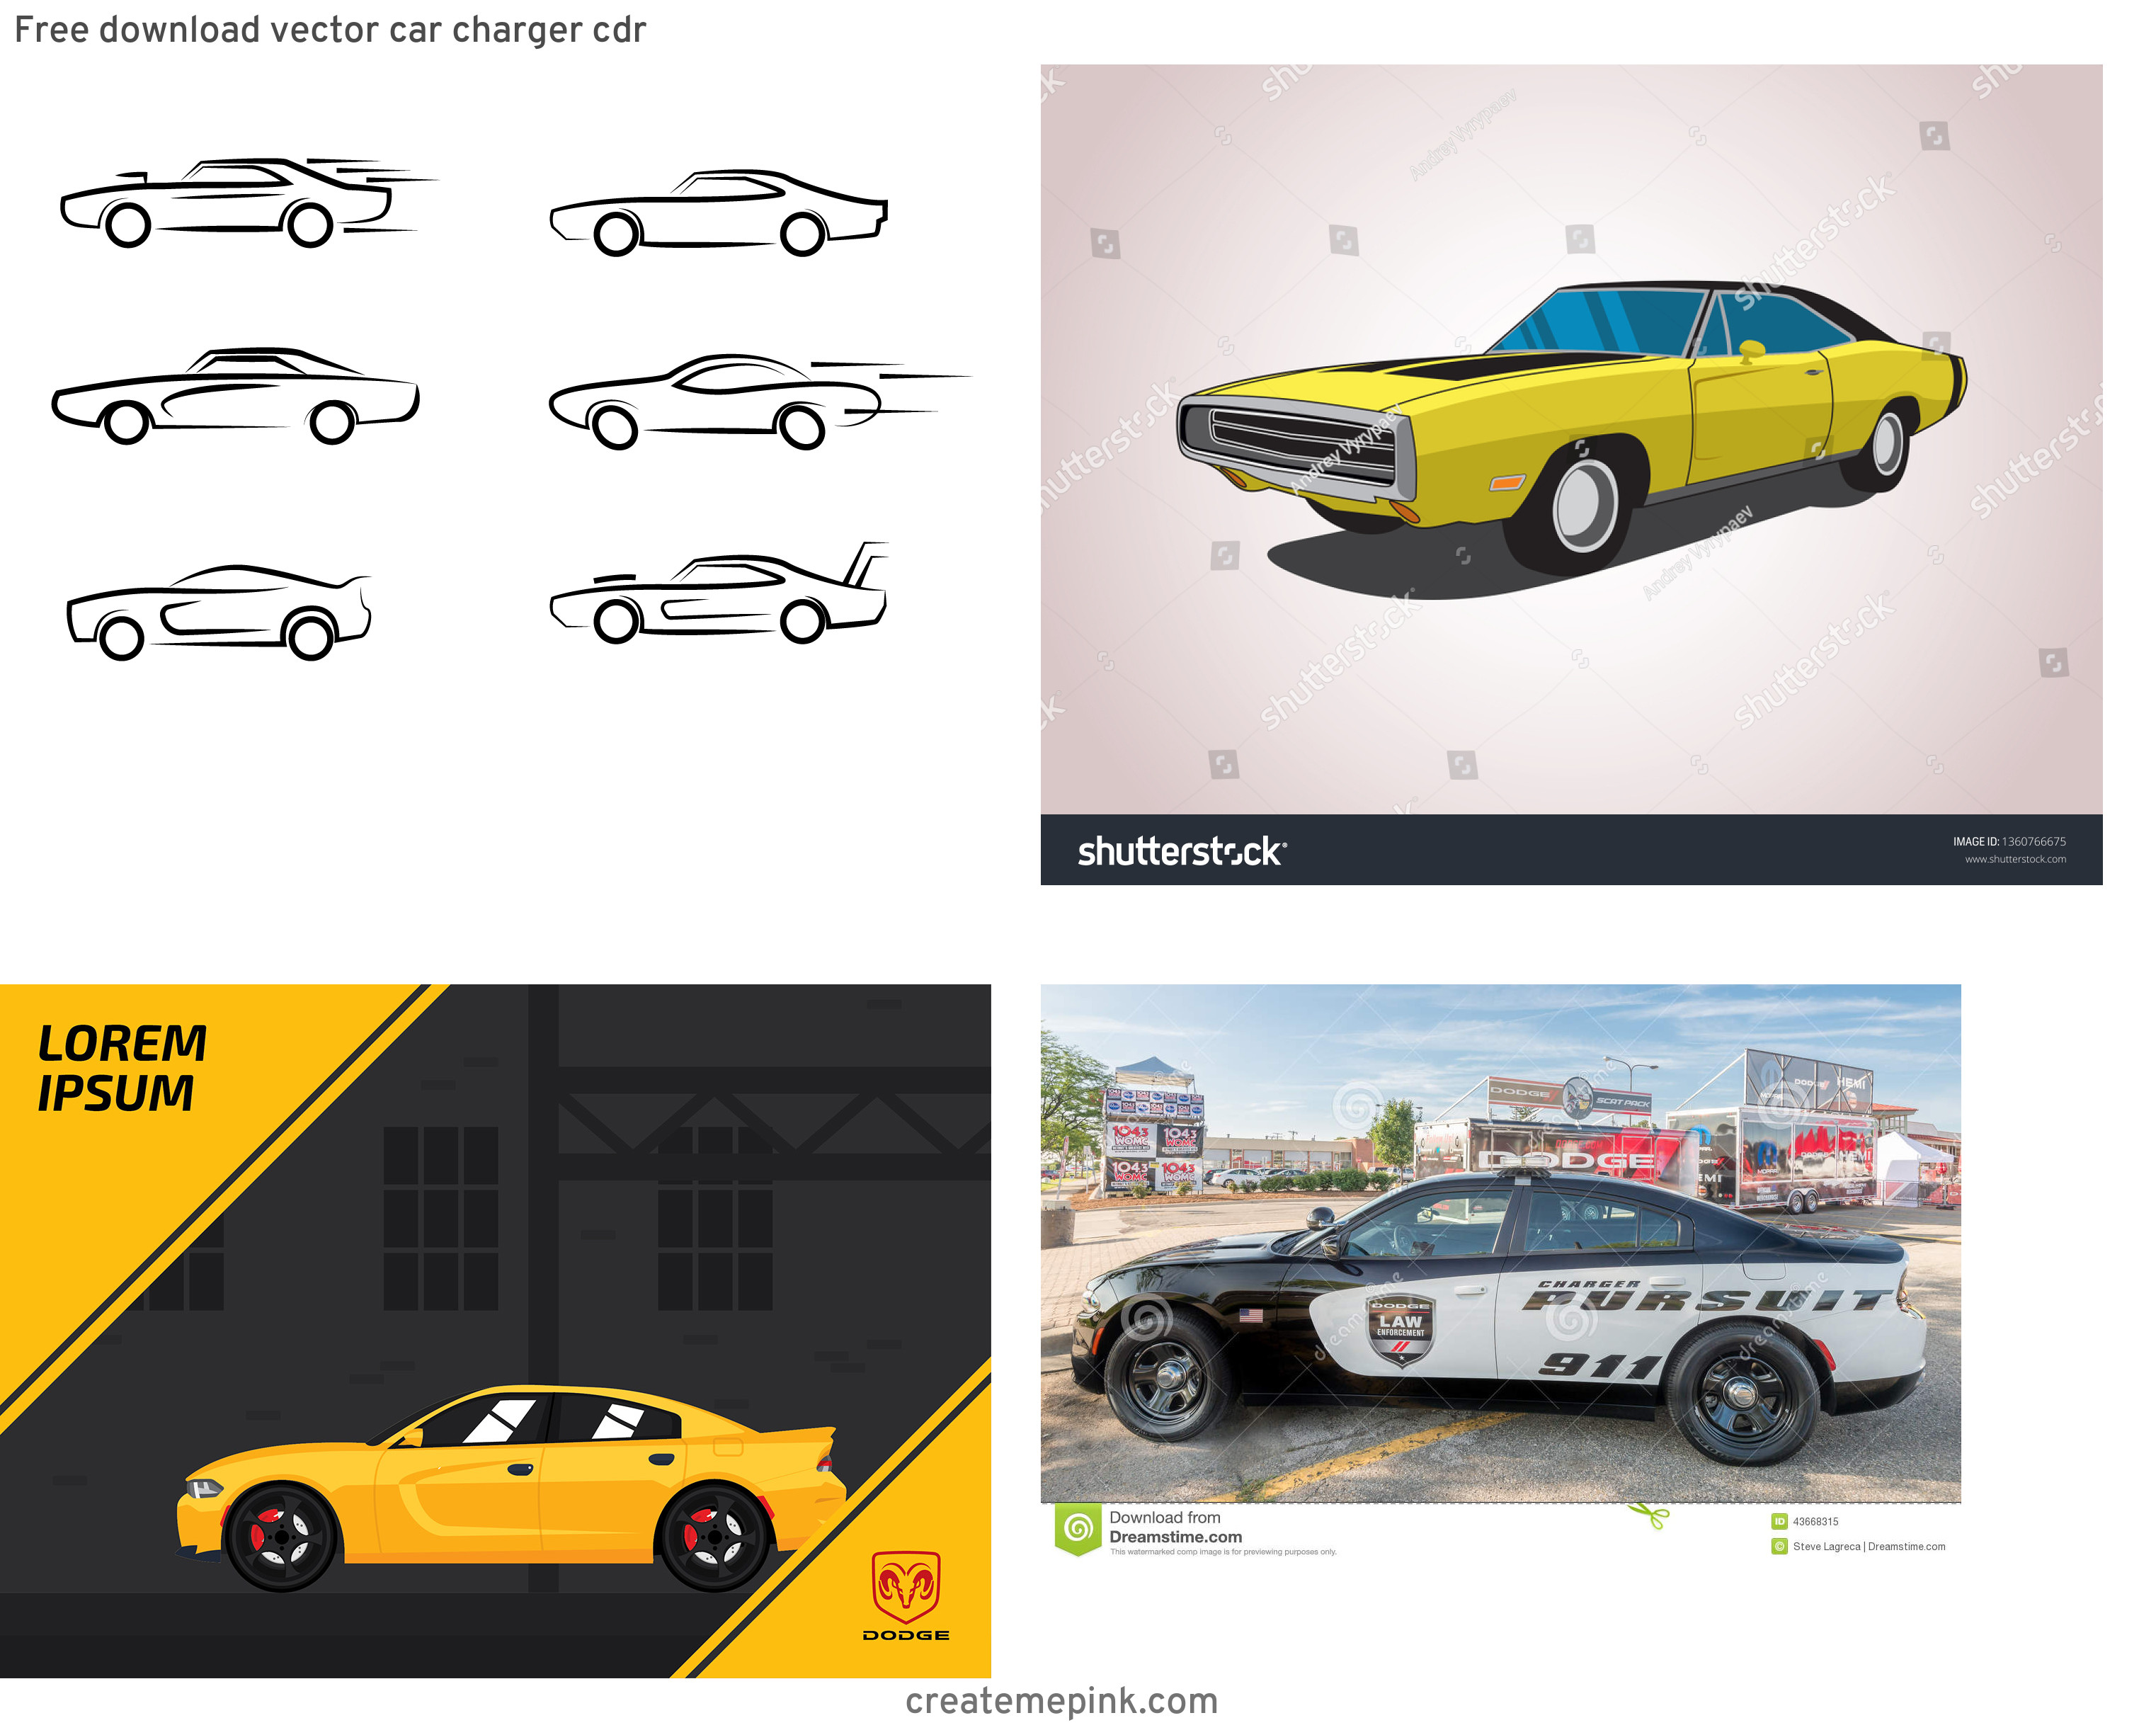 Dodge Charger Vector: Free Download Vector Car Charger Cdr